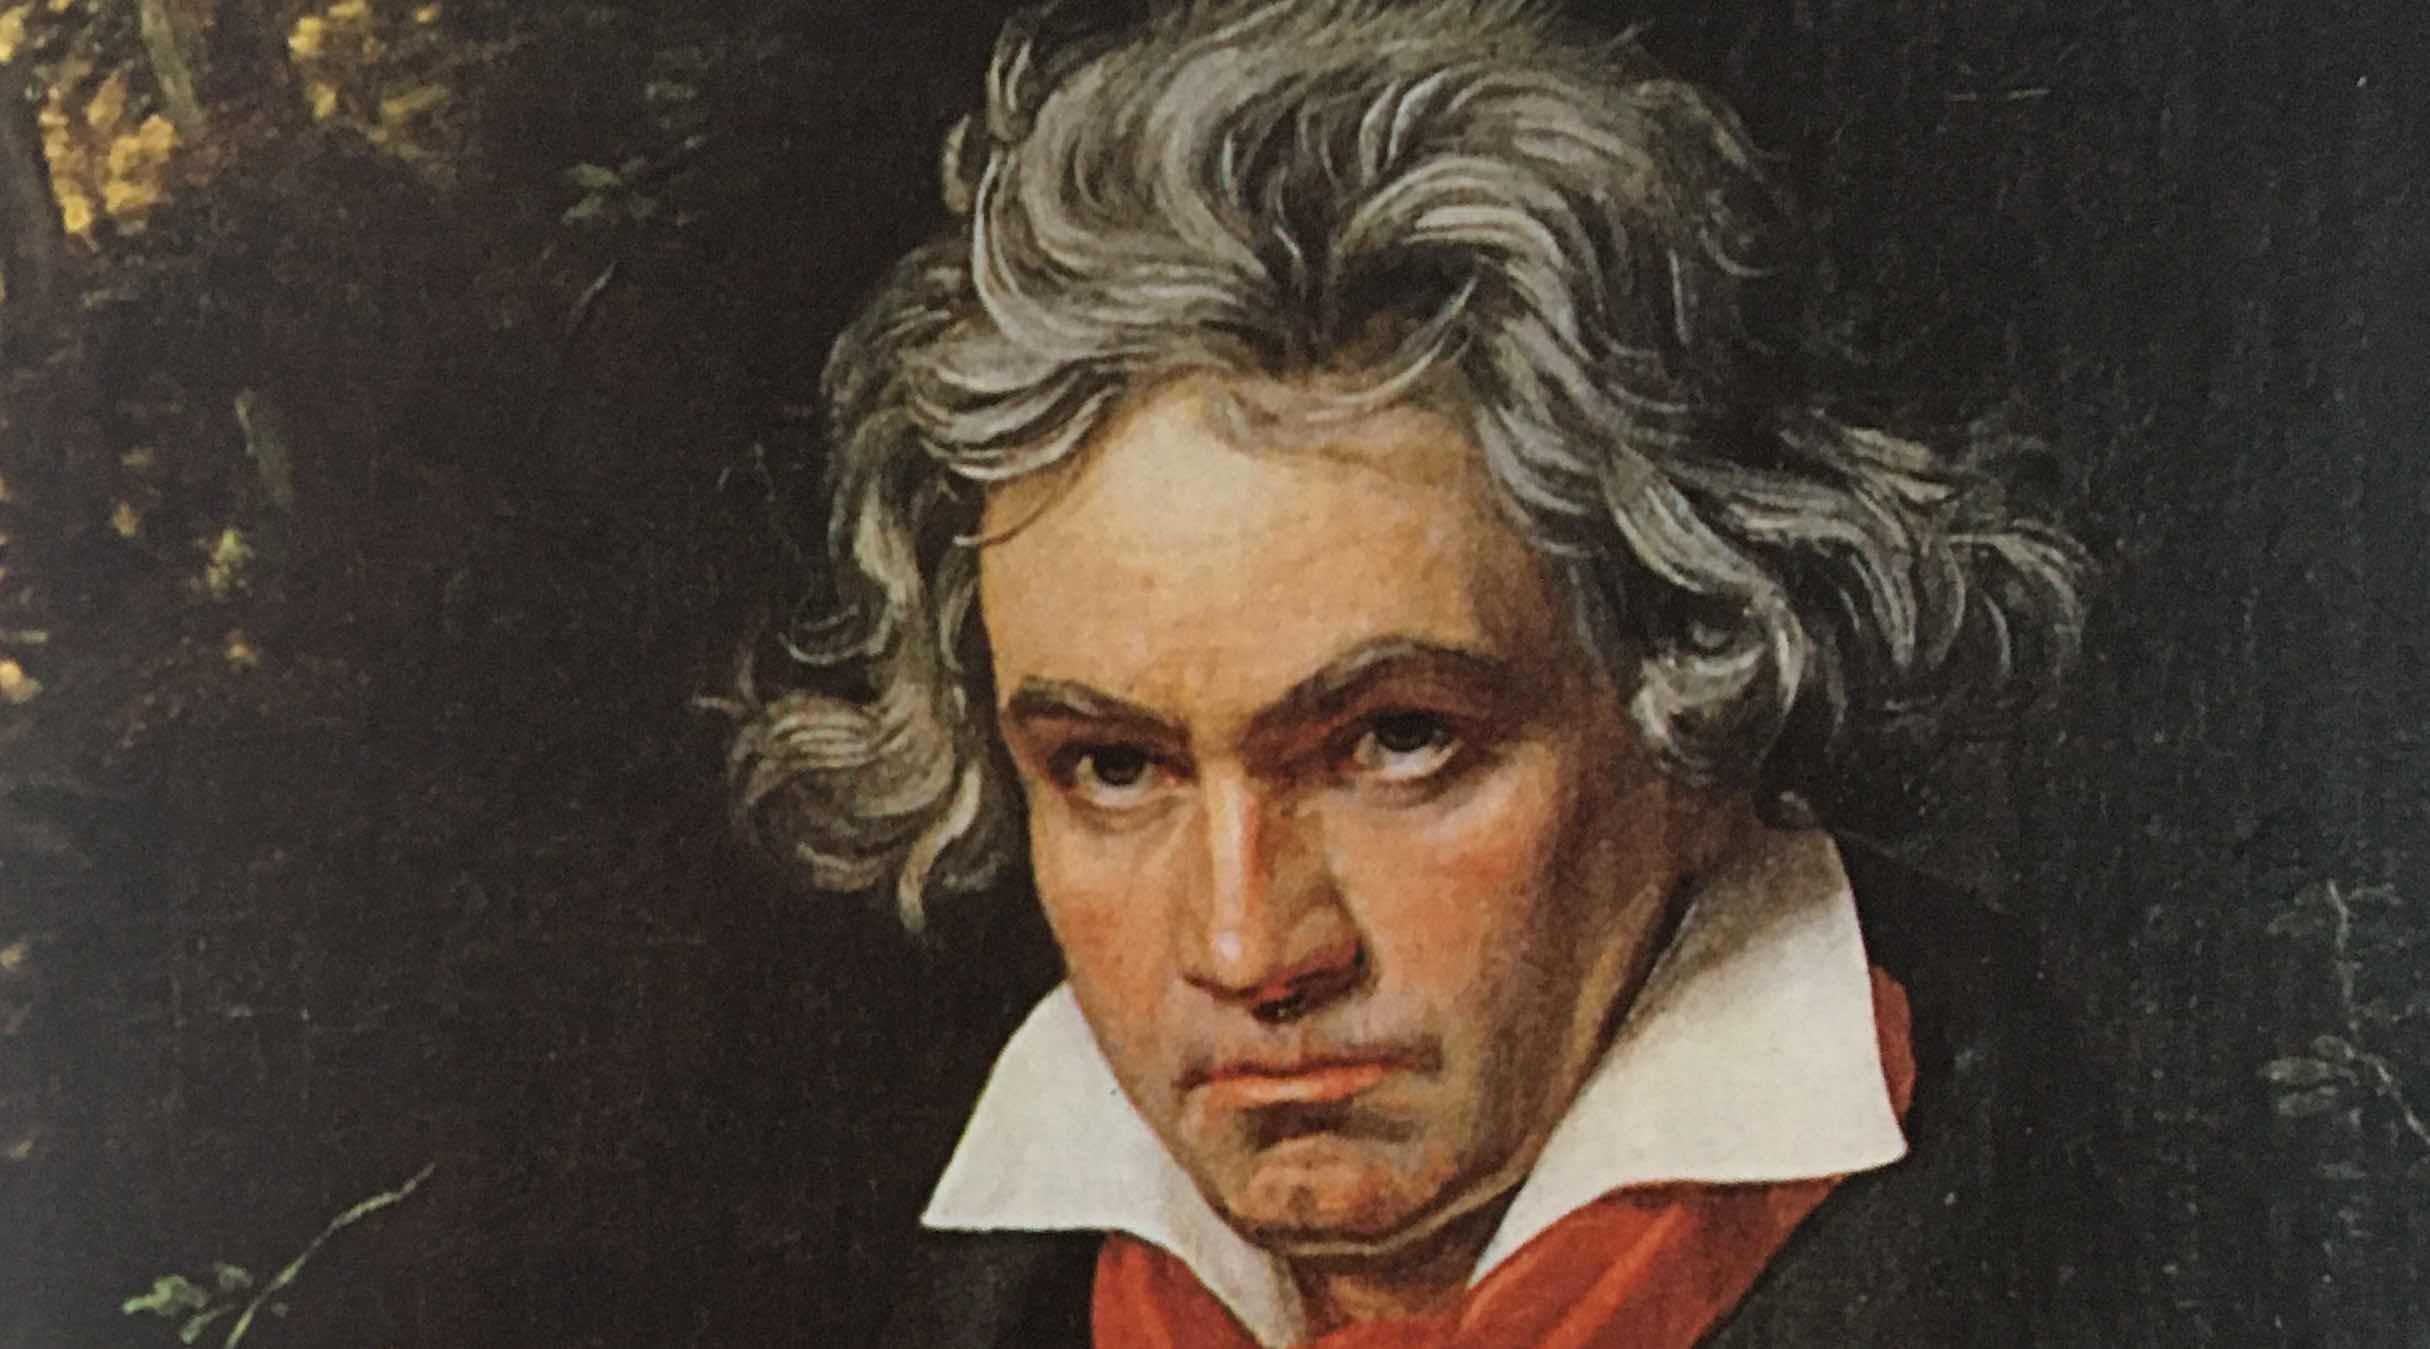 Beethoven quer kljpg